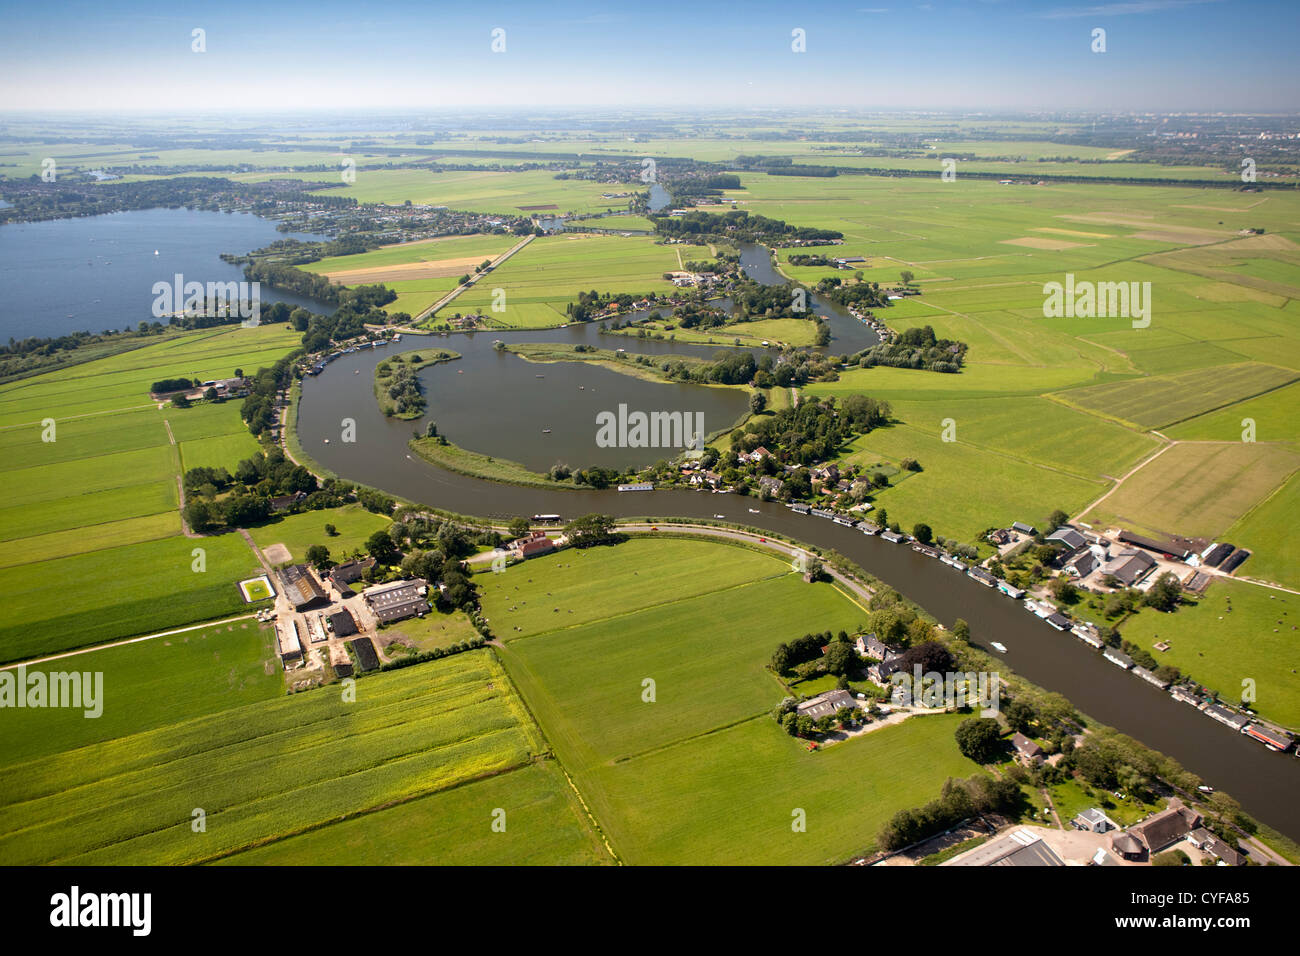 The Netherlands, Nederhorst den Berg. The disappeared Fort Hinderdam. UNESCO World Heritage Site. Aerial. - Stock Image